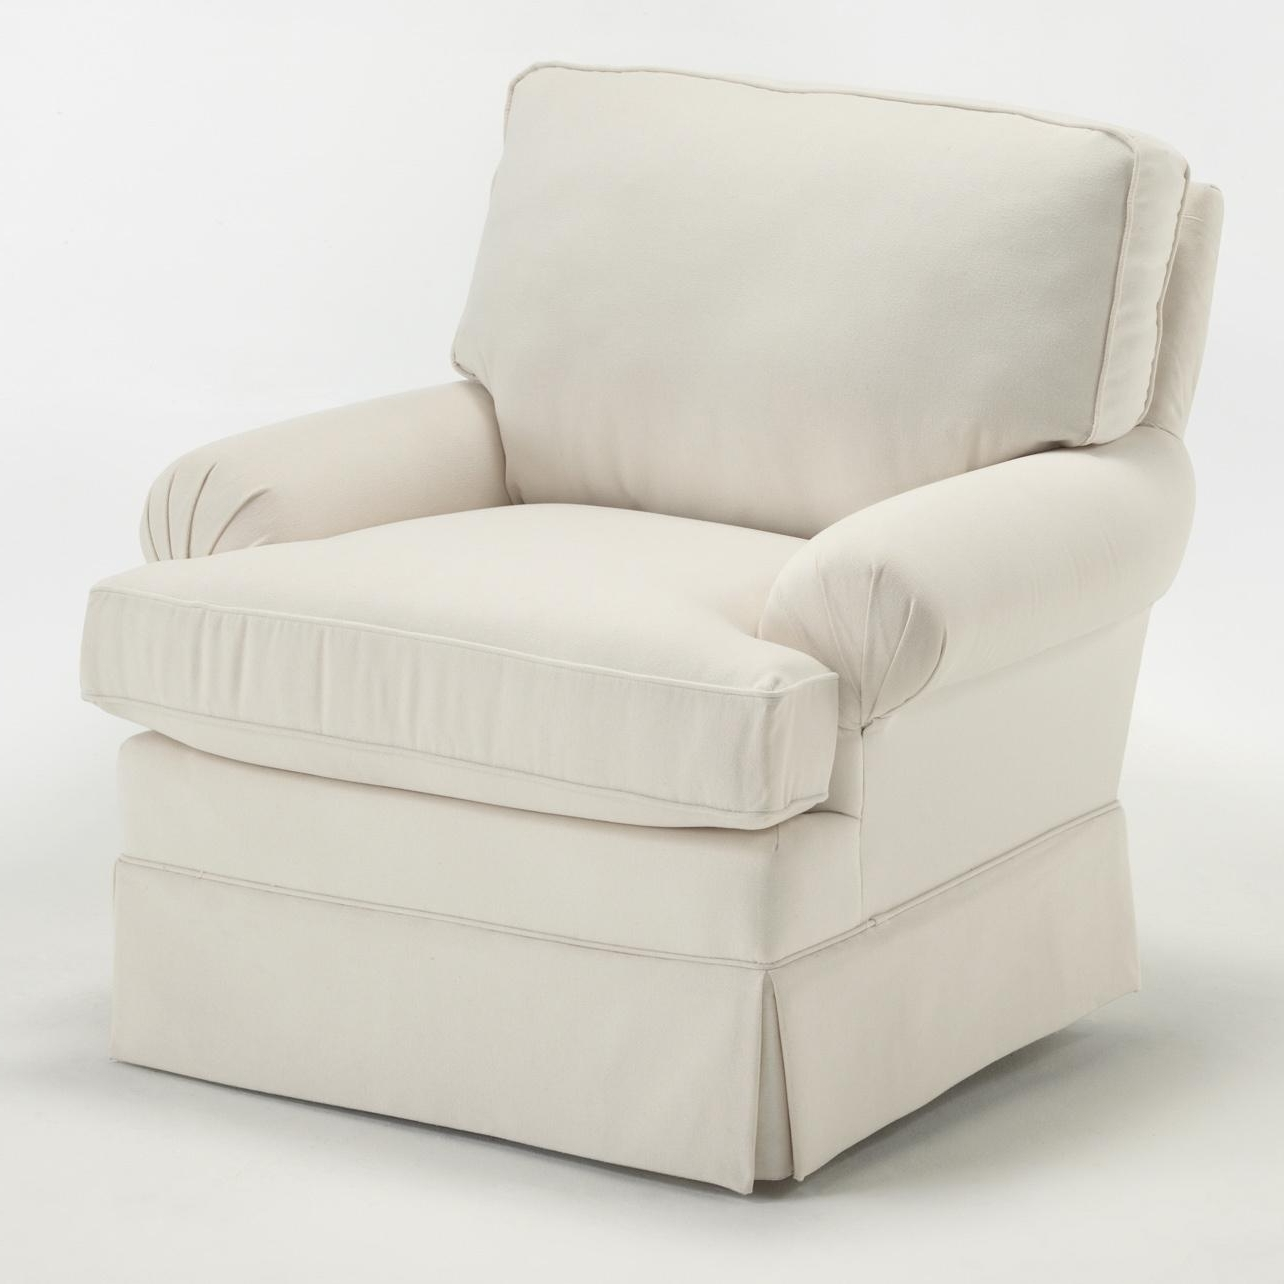 Best Home Furnishings Kamilla Kamilla Swivel Glider With Skirted Throughout Well Known Swivel Rocking Chairs (View 4 of 15)